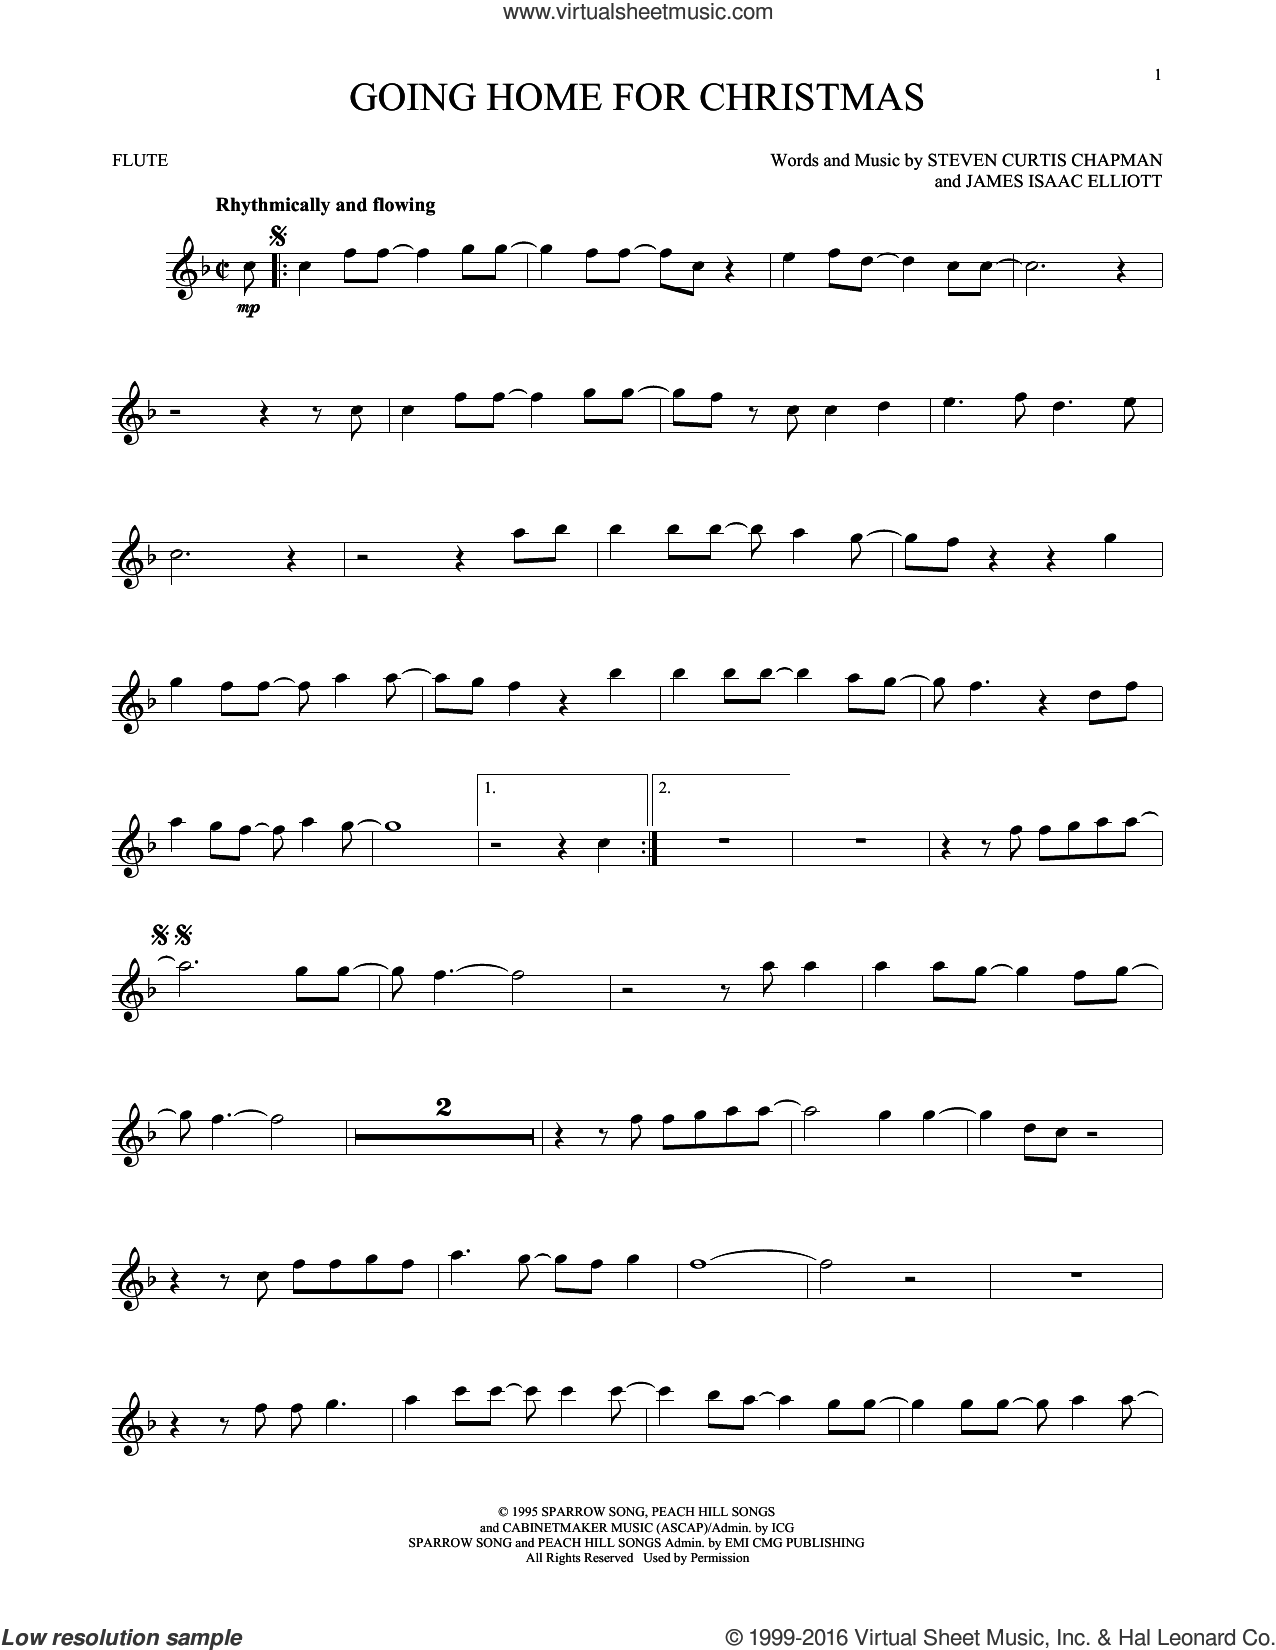 Going Home For Christmas sheet music for flute solo by Steven Curtis Chapman and James Isaac Elliott, intermediate. Score Image Preview.